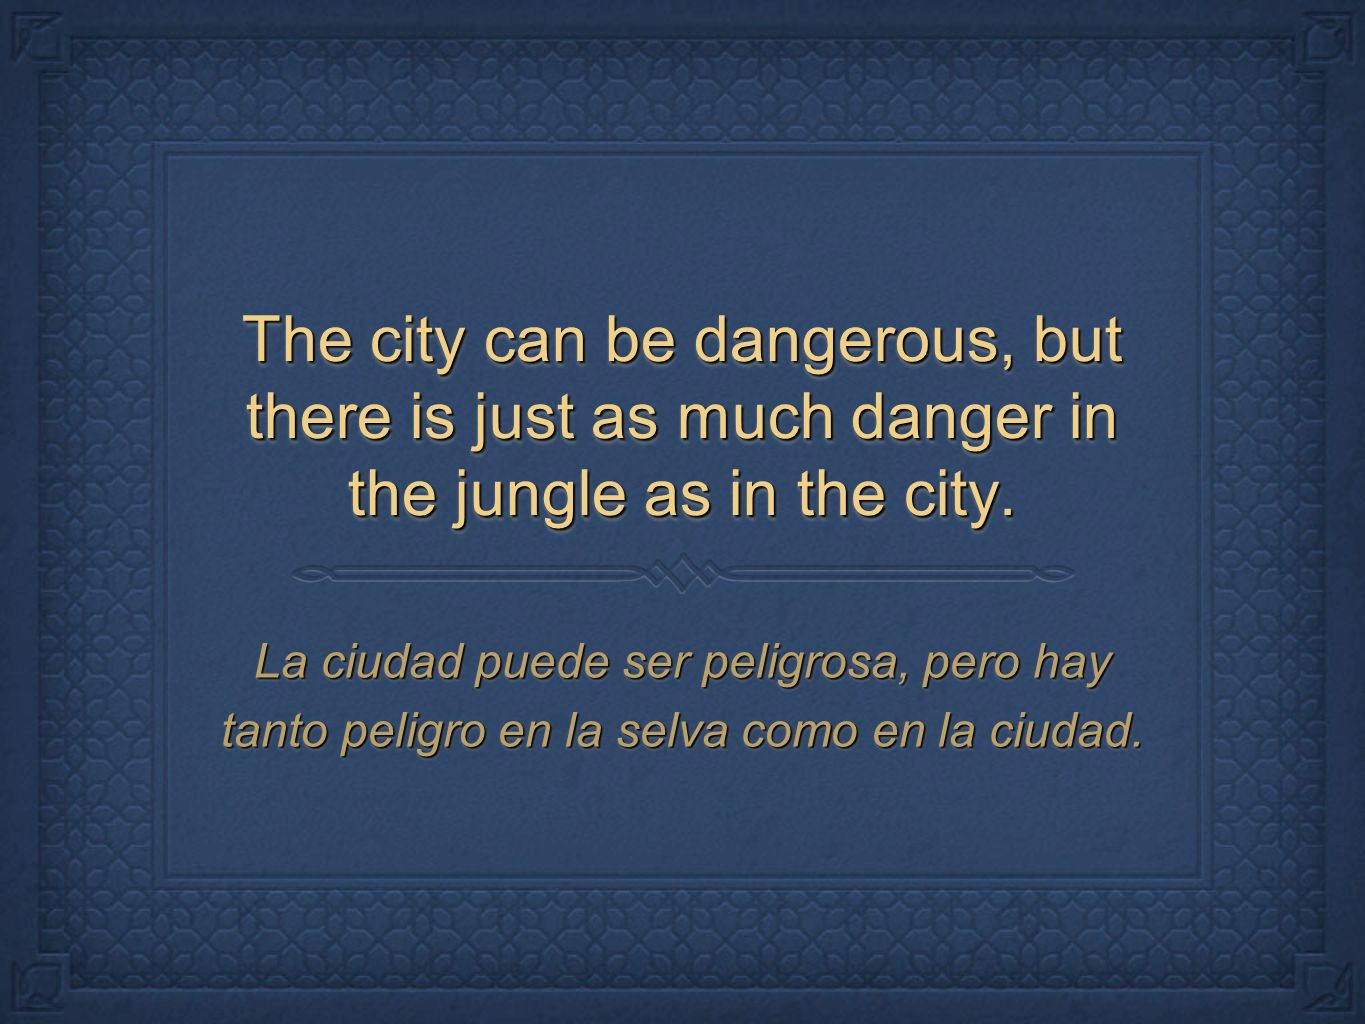 The city can be dangerous, but there is just as much danger in the jungle as in the city.